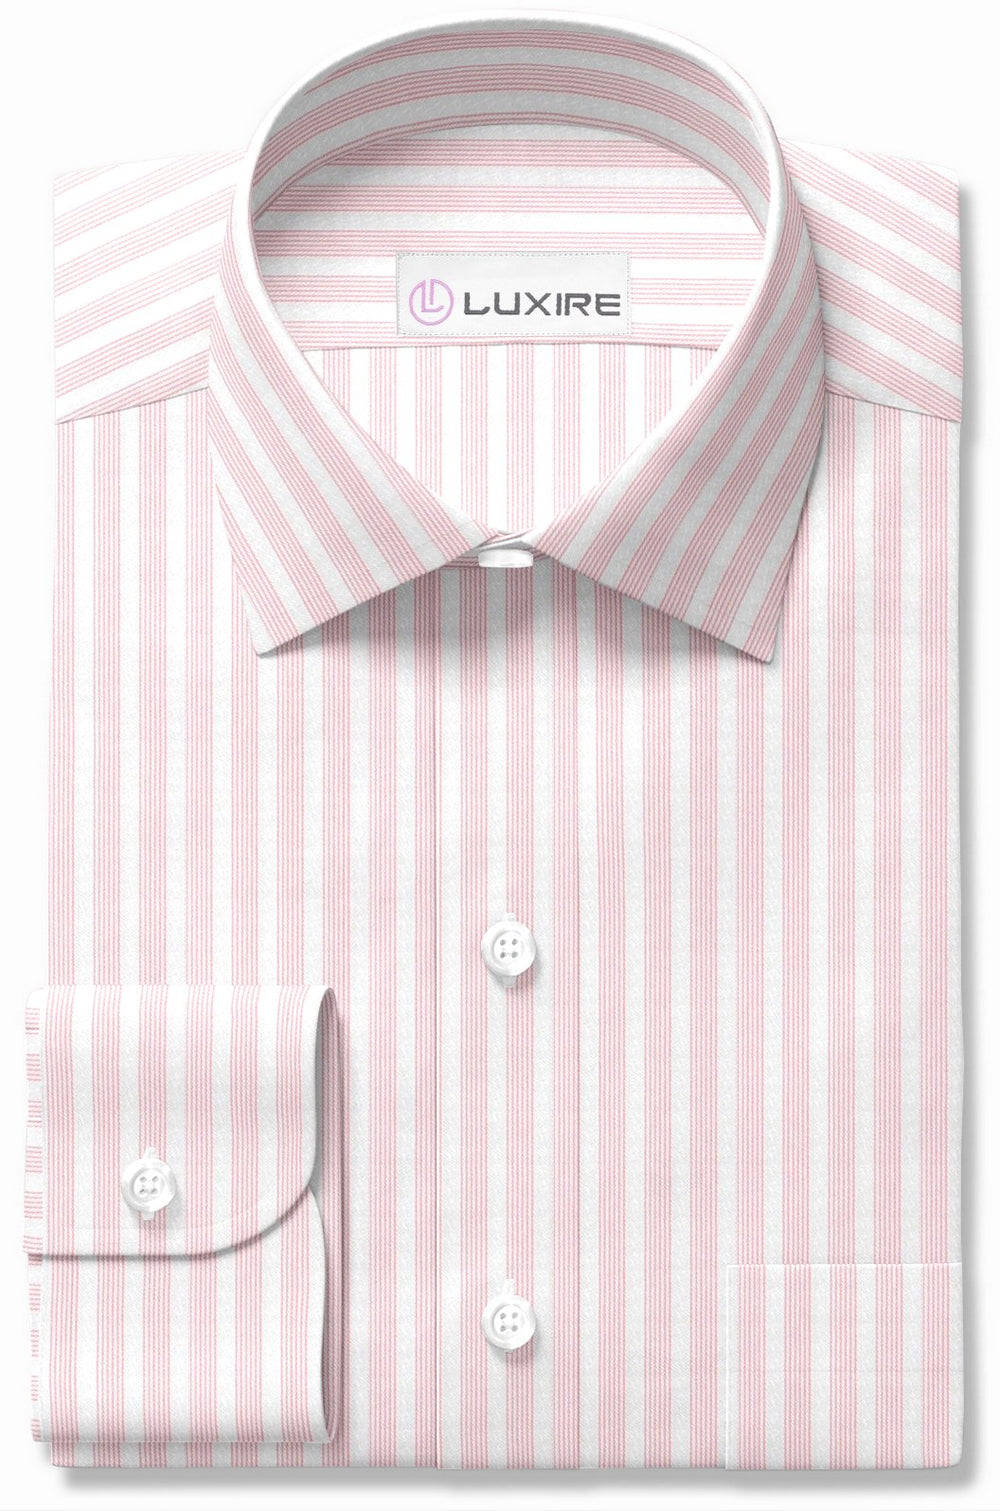 Pink Stripes on Textured White